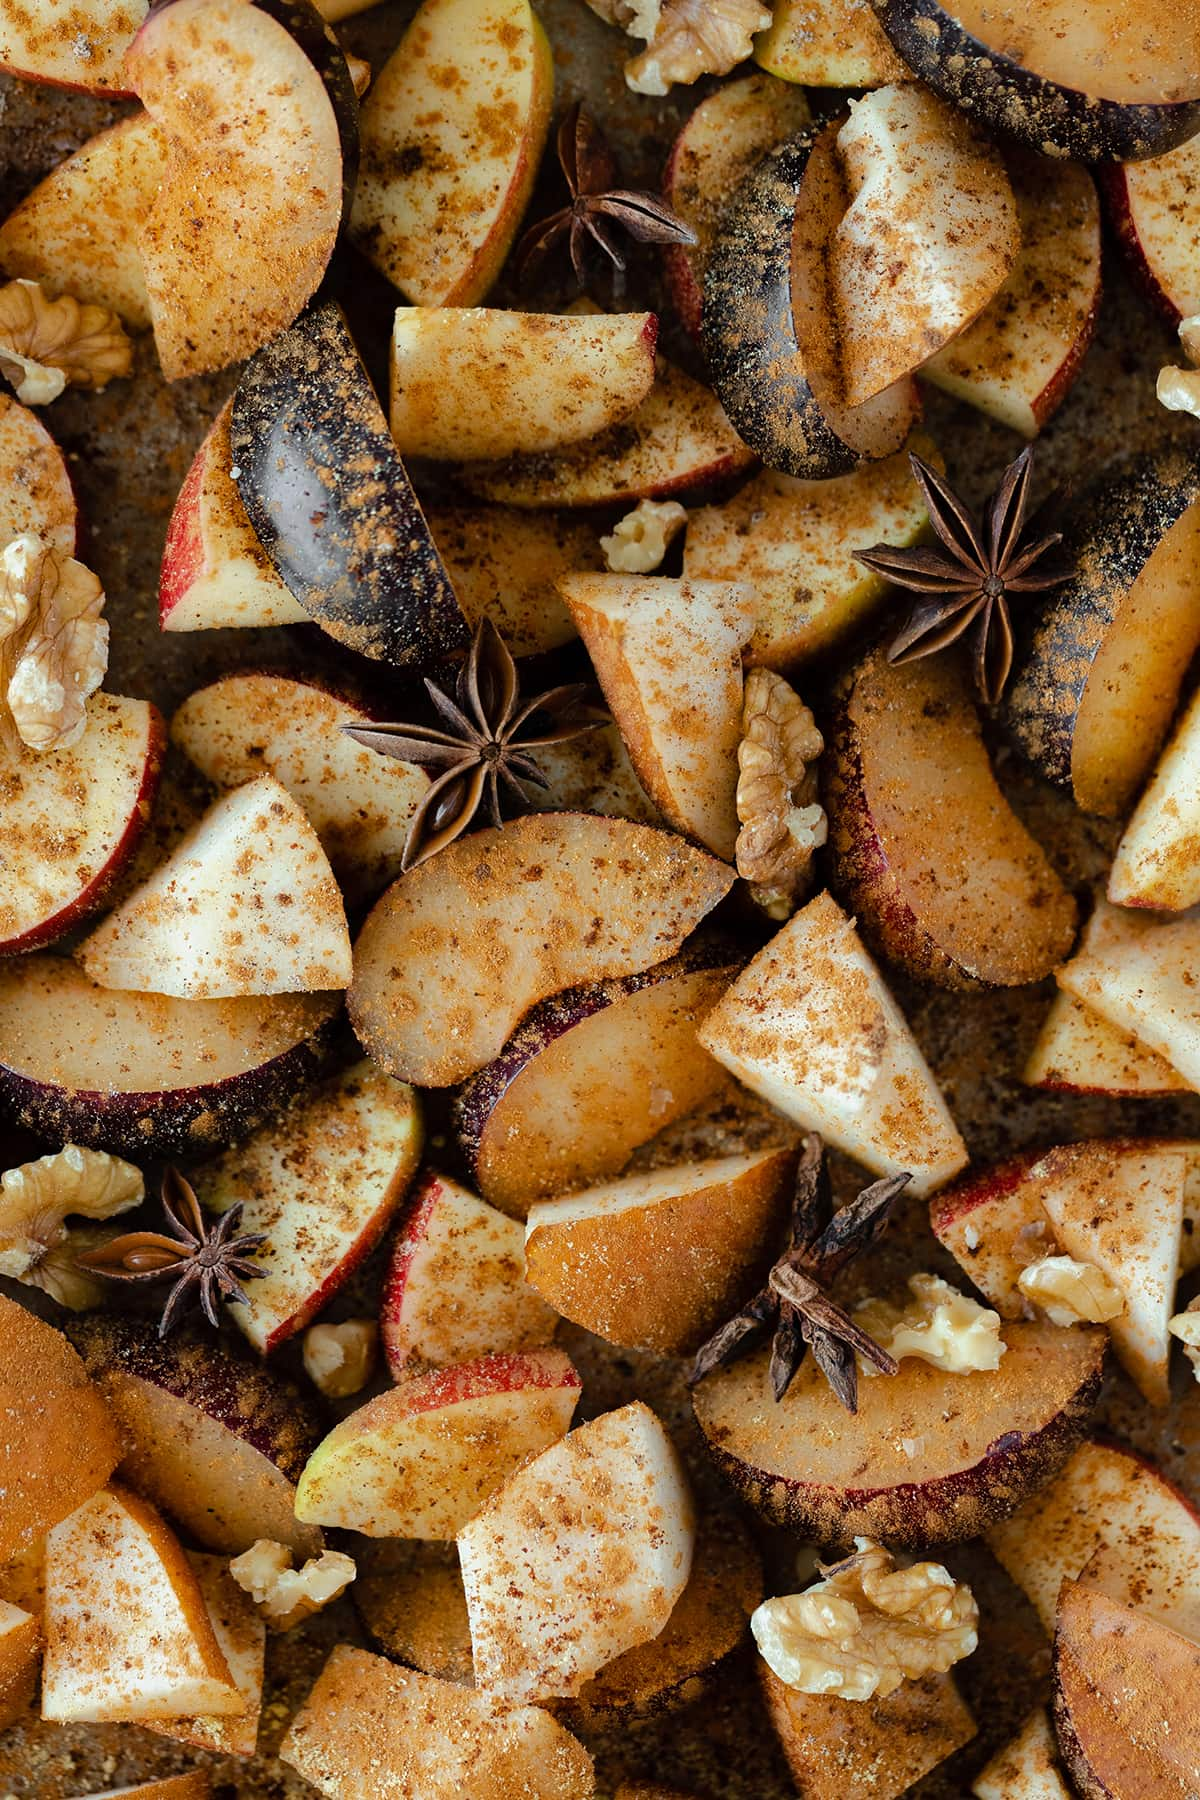 Chopped winter fruits spiced with cinnamon and warming spices.